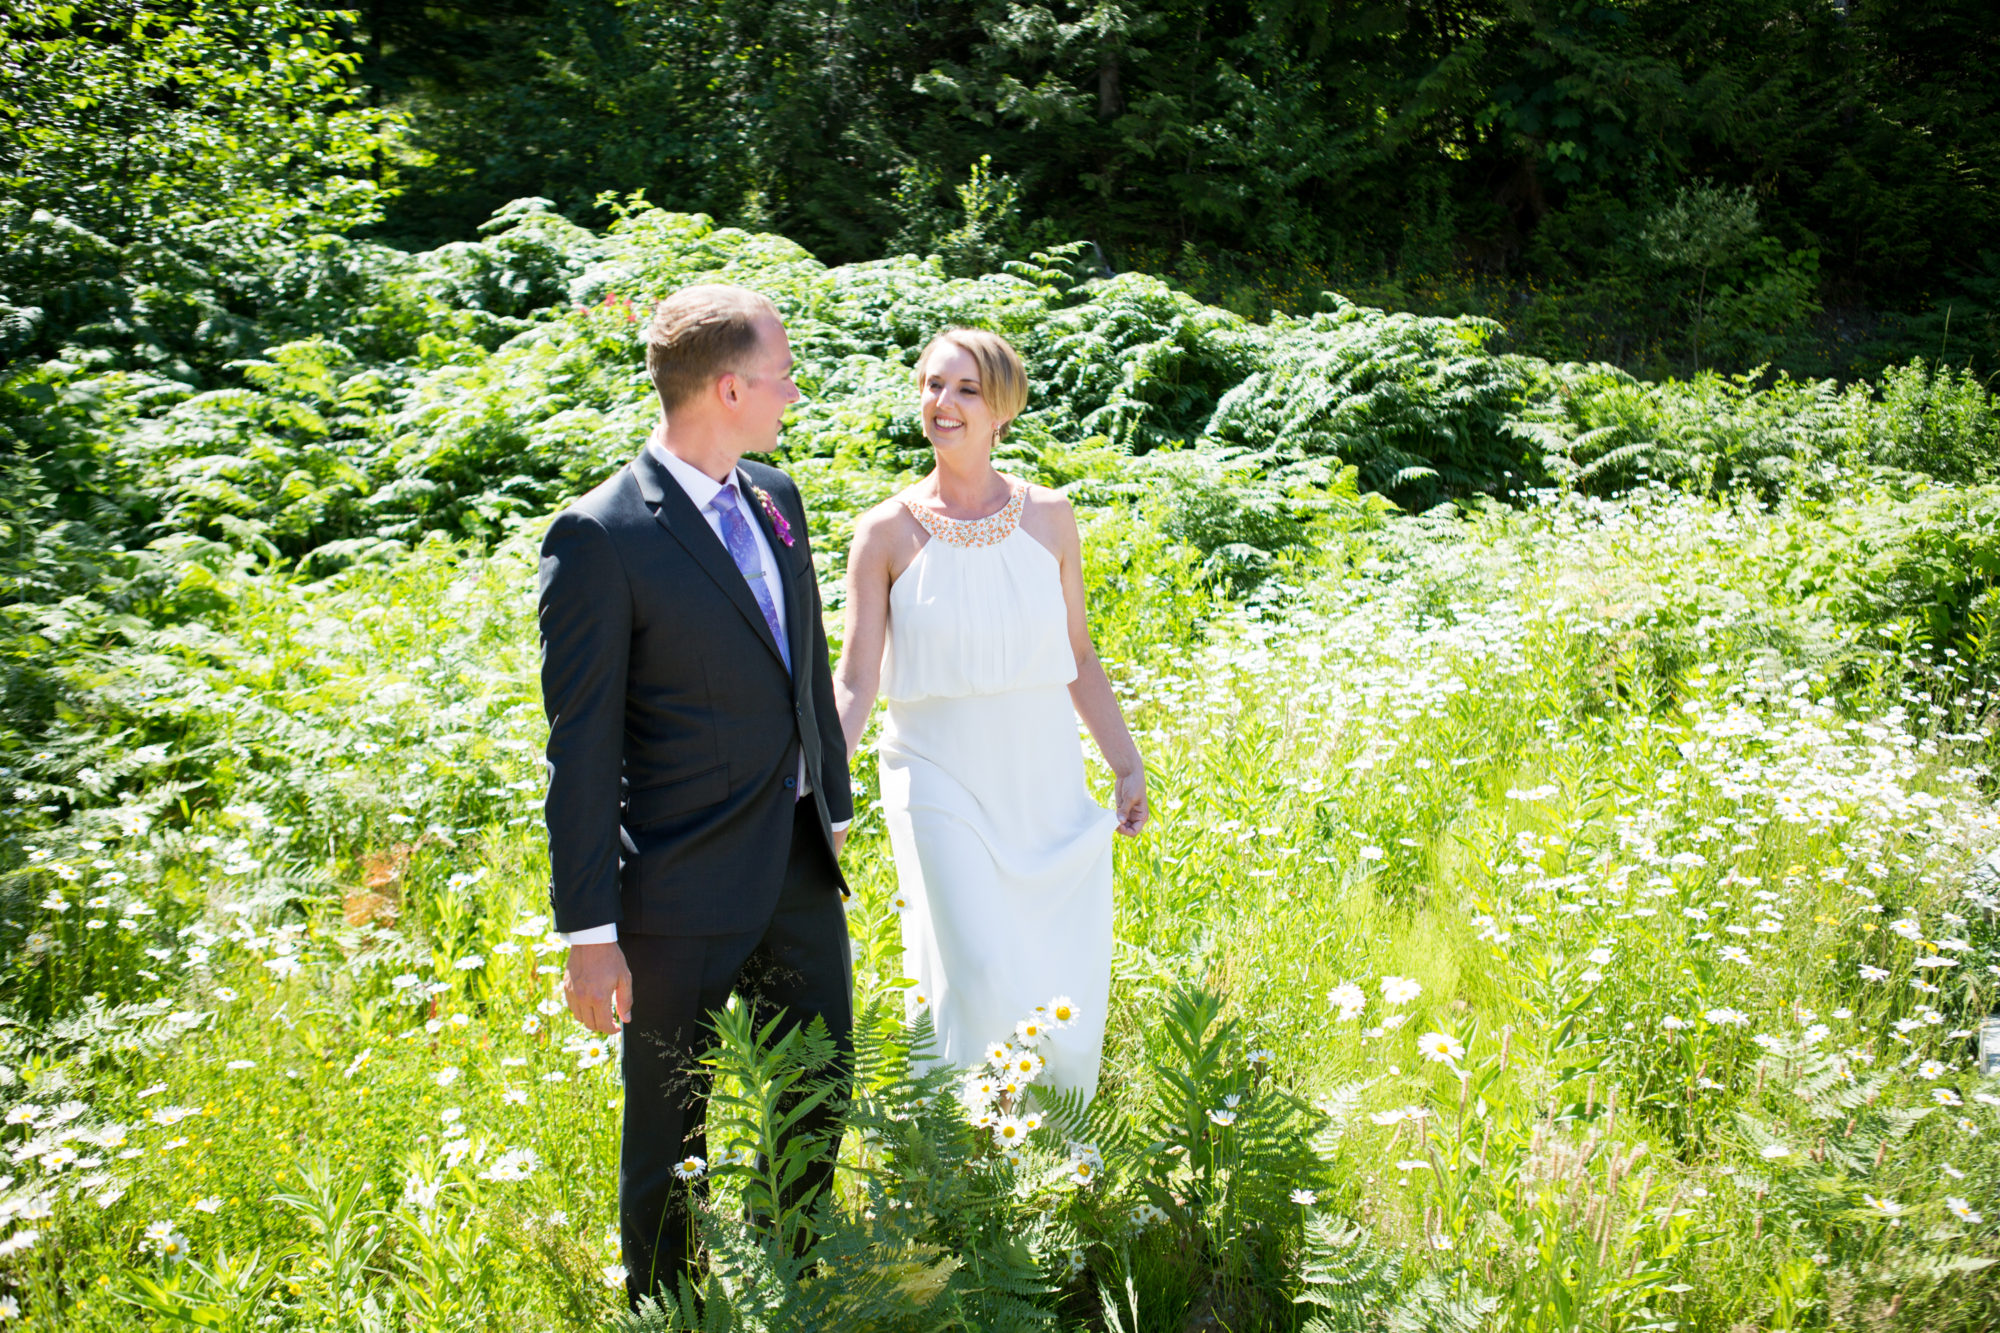 Daisy Walk Hope Wedding British Columbia American Creek Lodge Zsuzsi Pal Photography